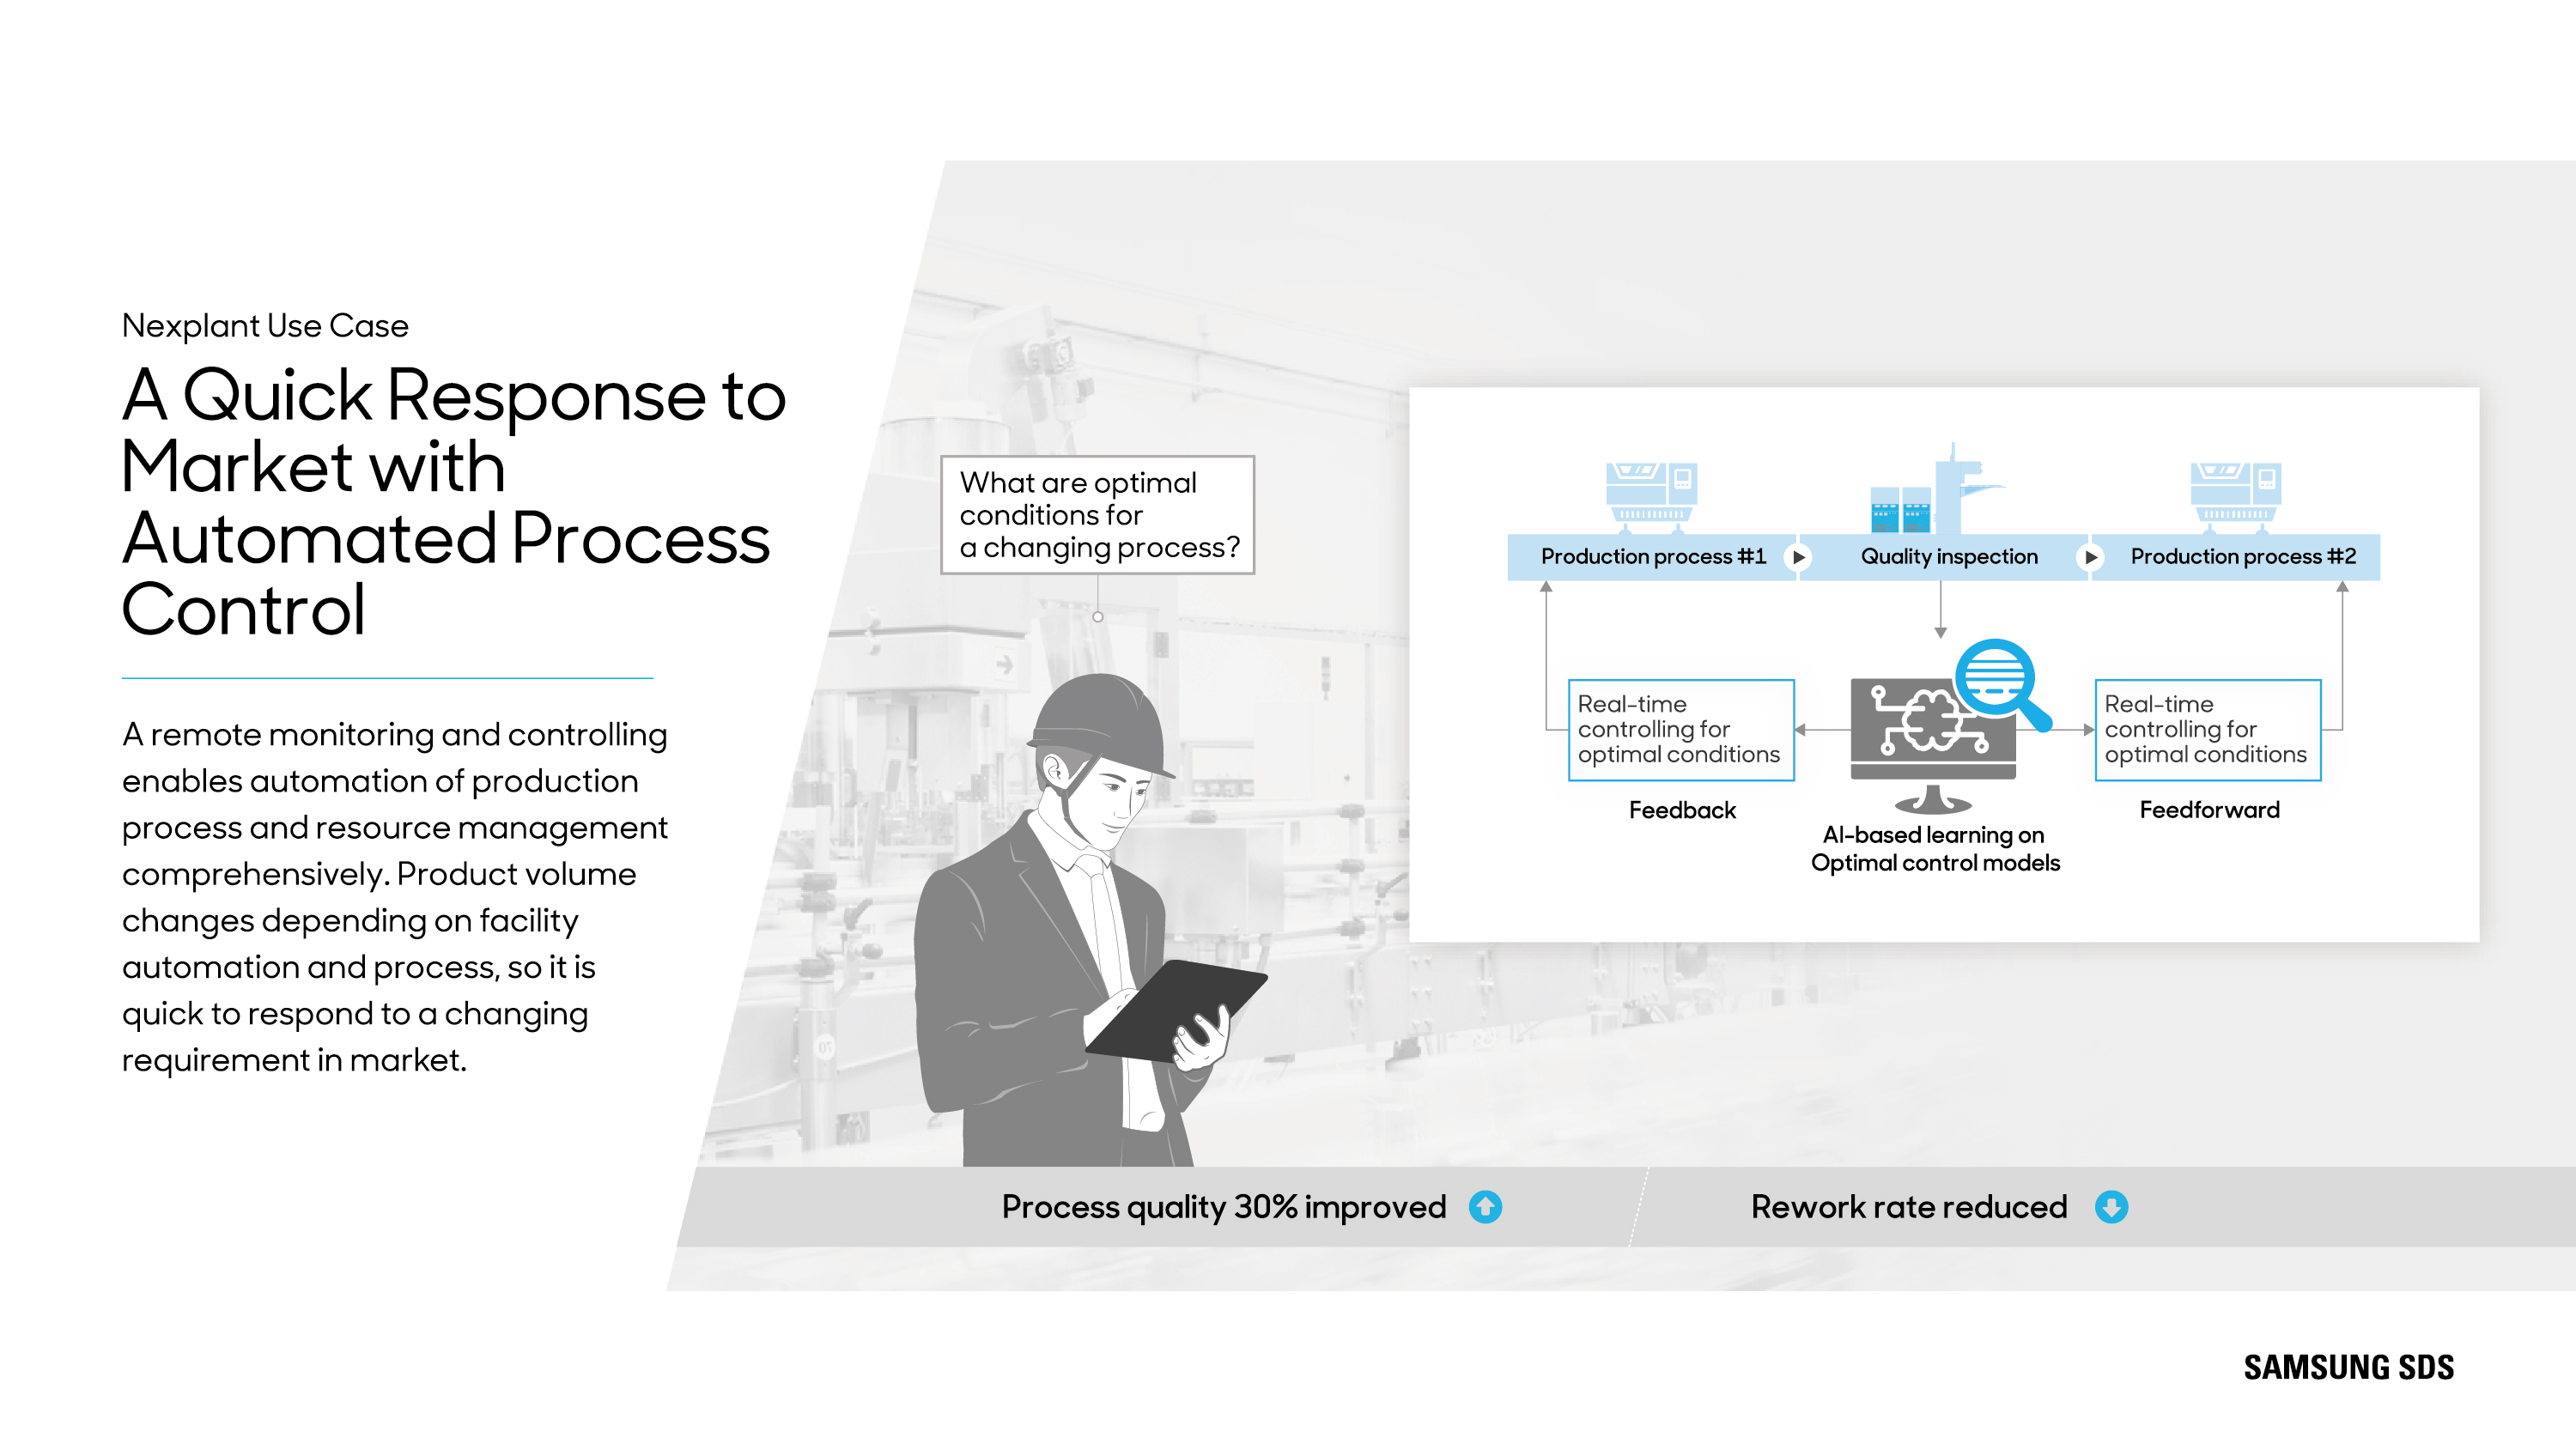 Proactively change production volumes depending on facility automation and process.